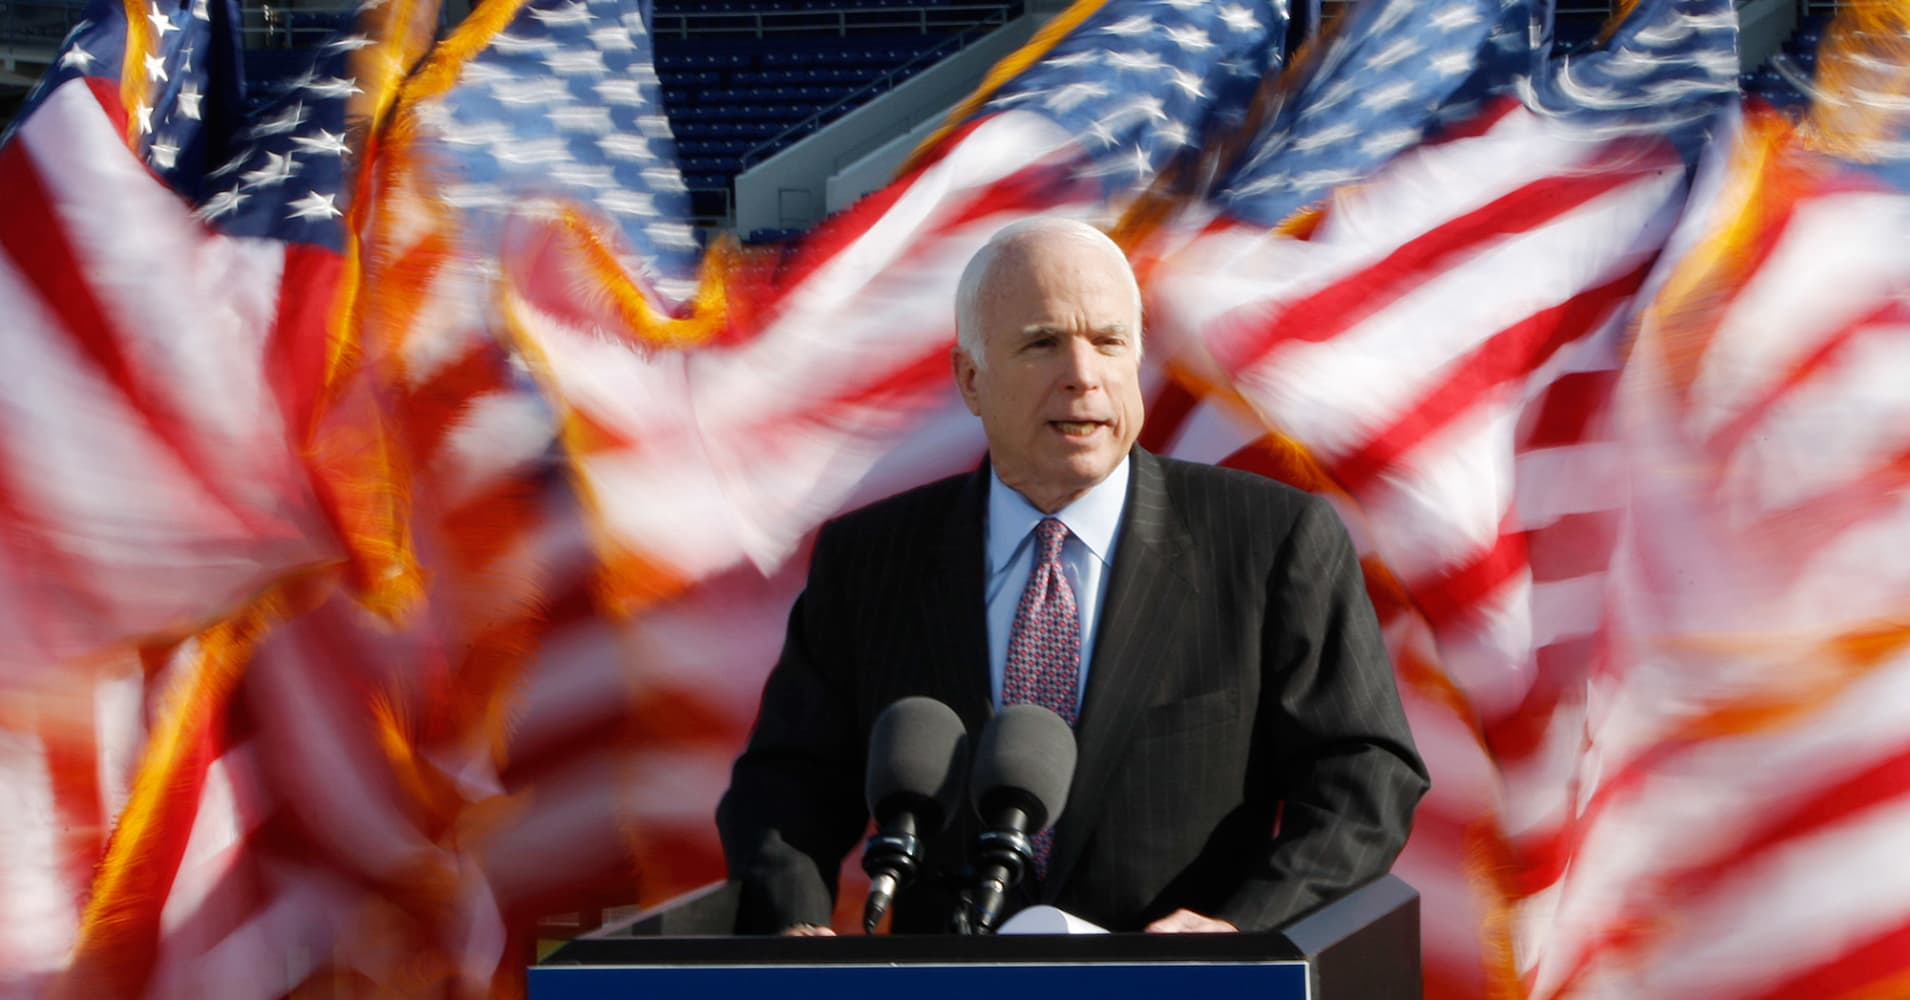 John McCain: Life and times of an American maverick in photos